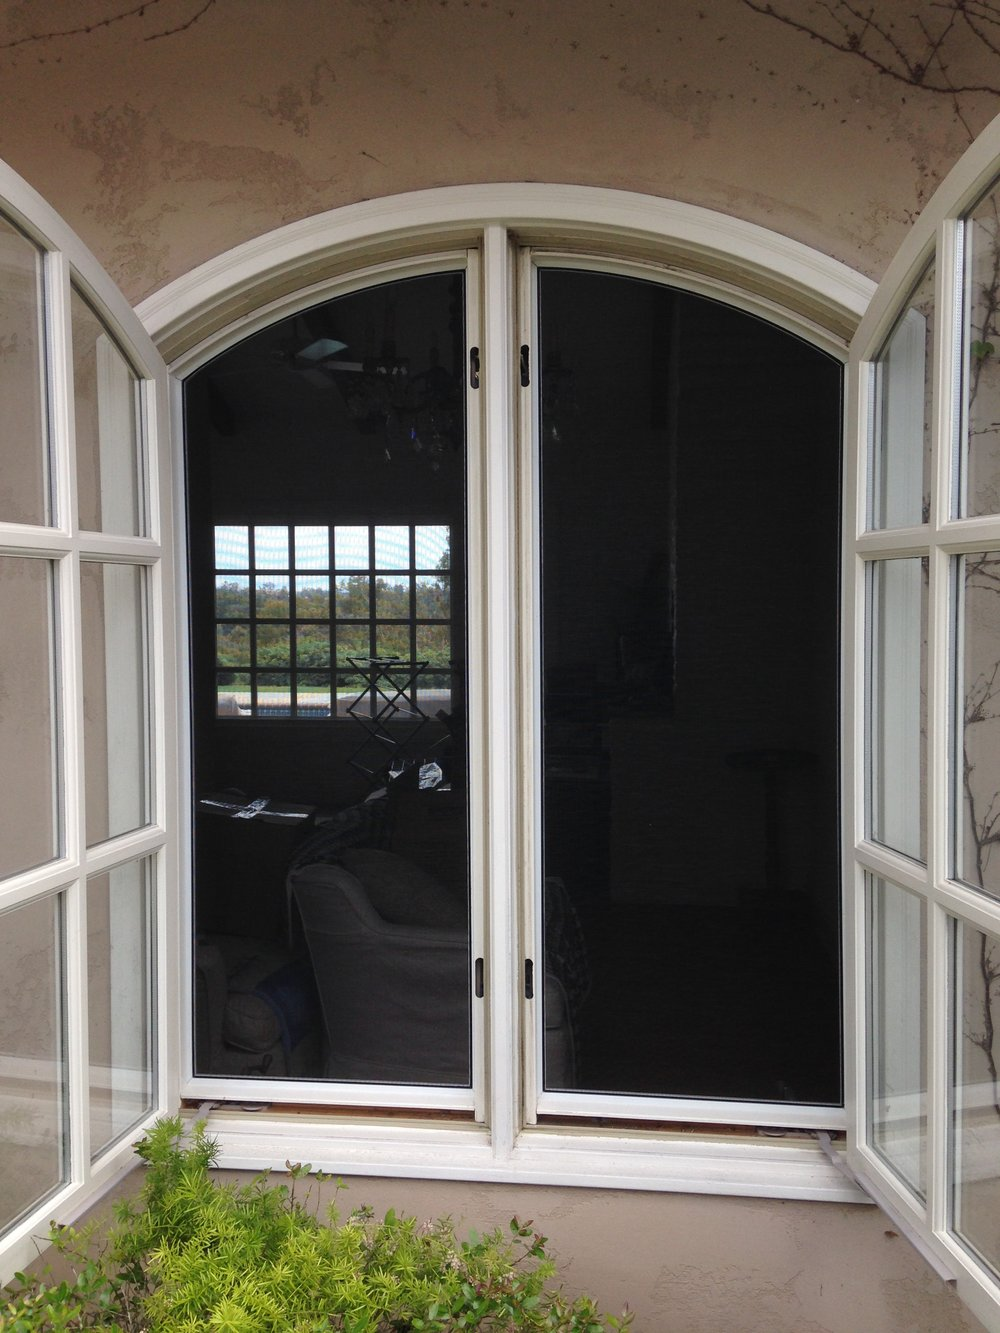 Gentil Get A Quote For Arched Window Screens